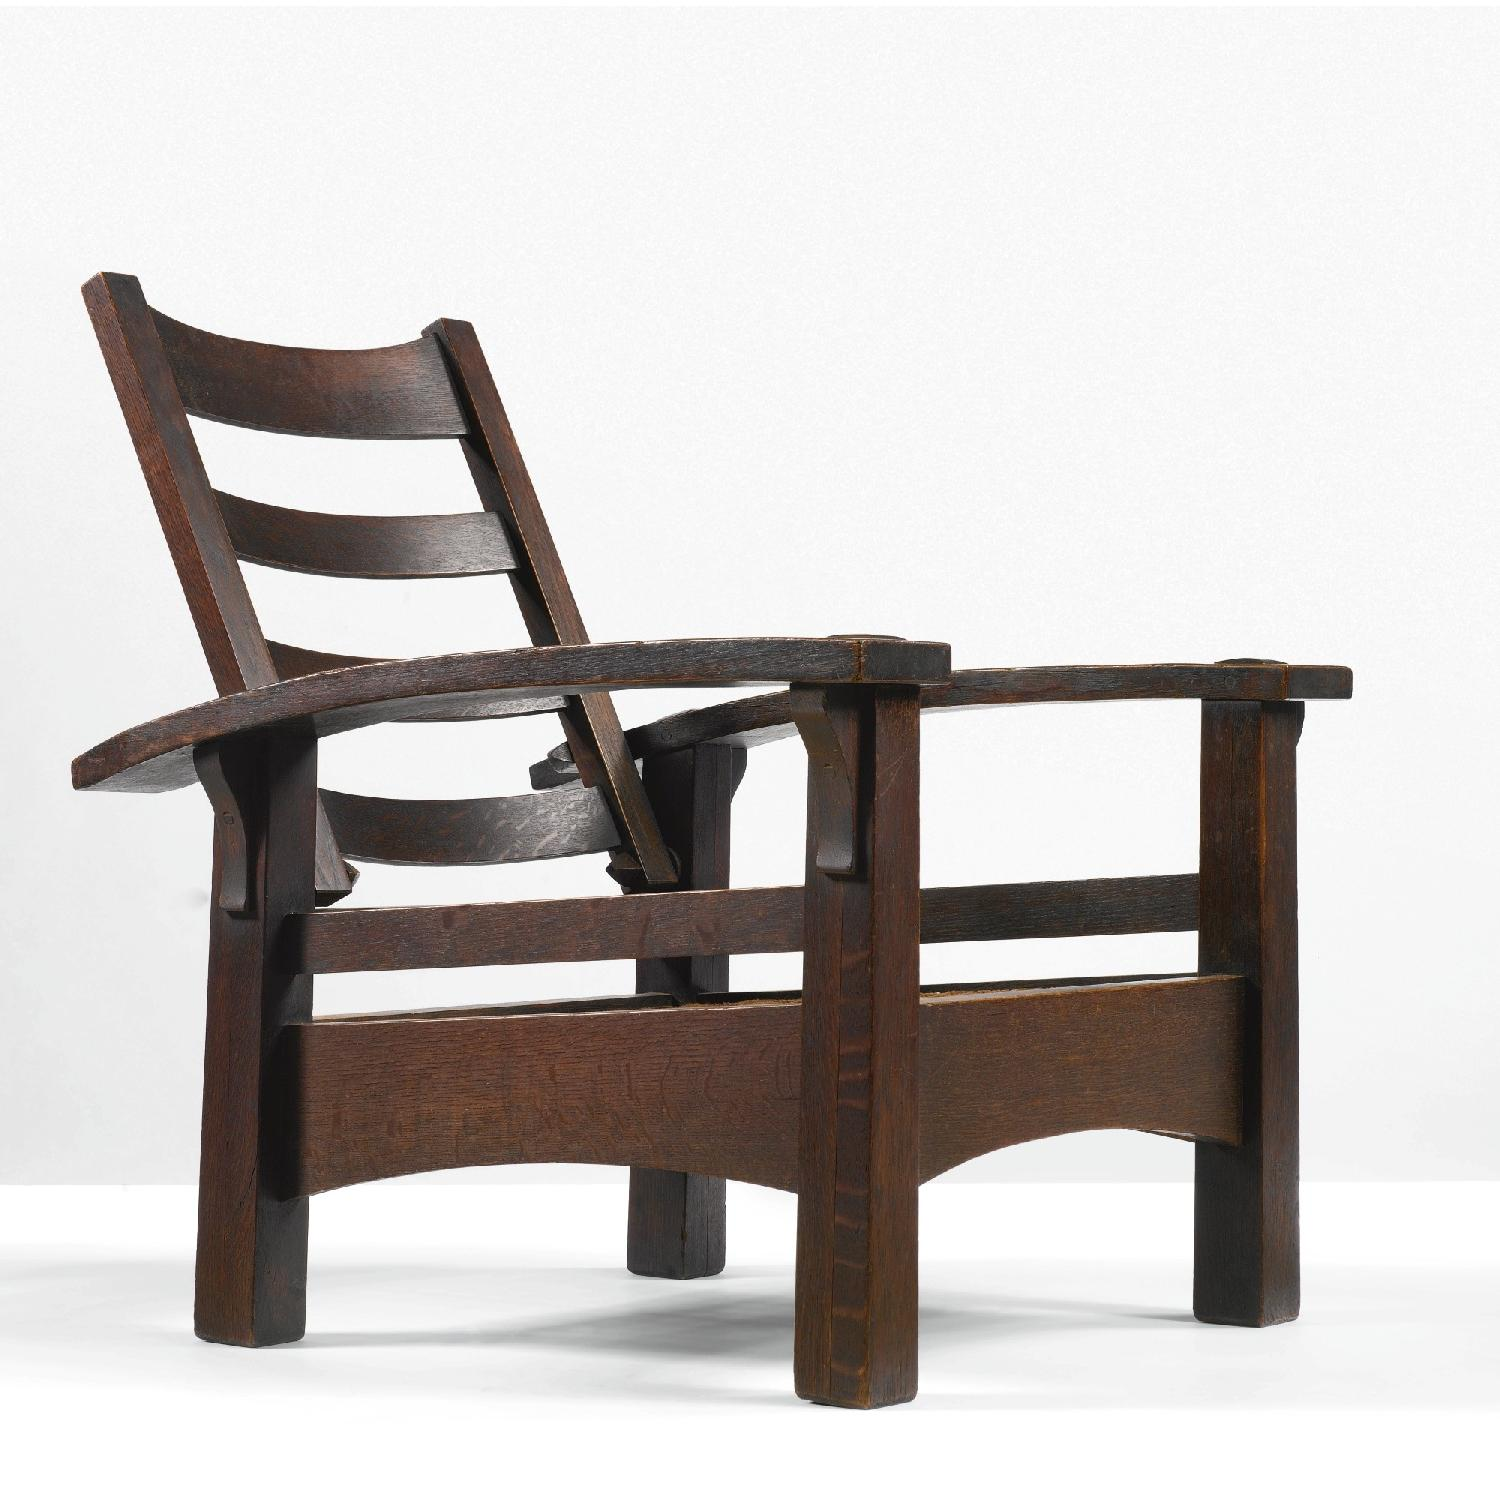 Stickley Bow Arm Morris Chair - image-5